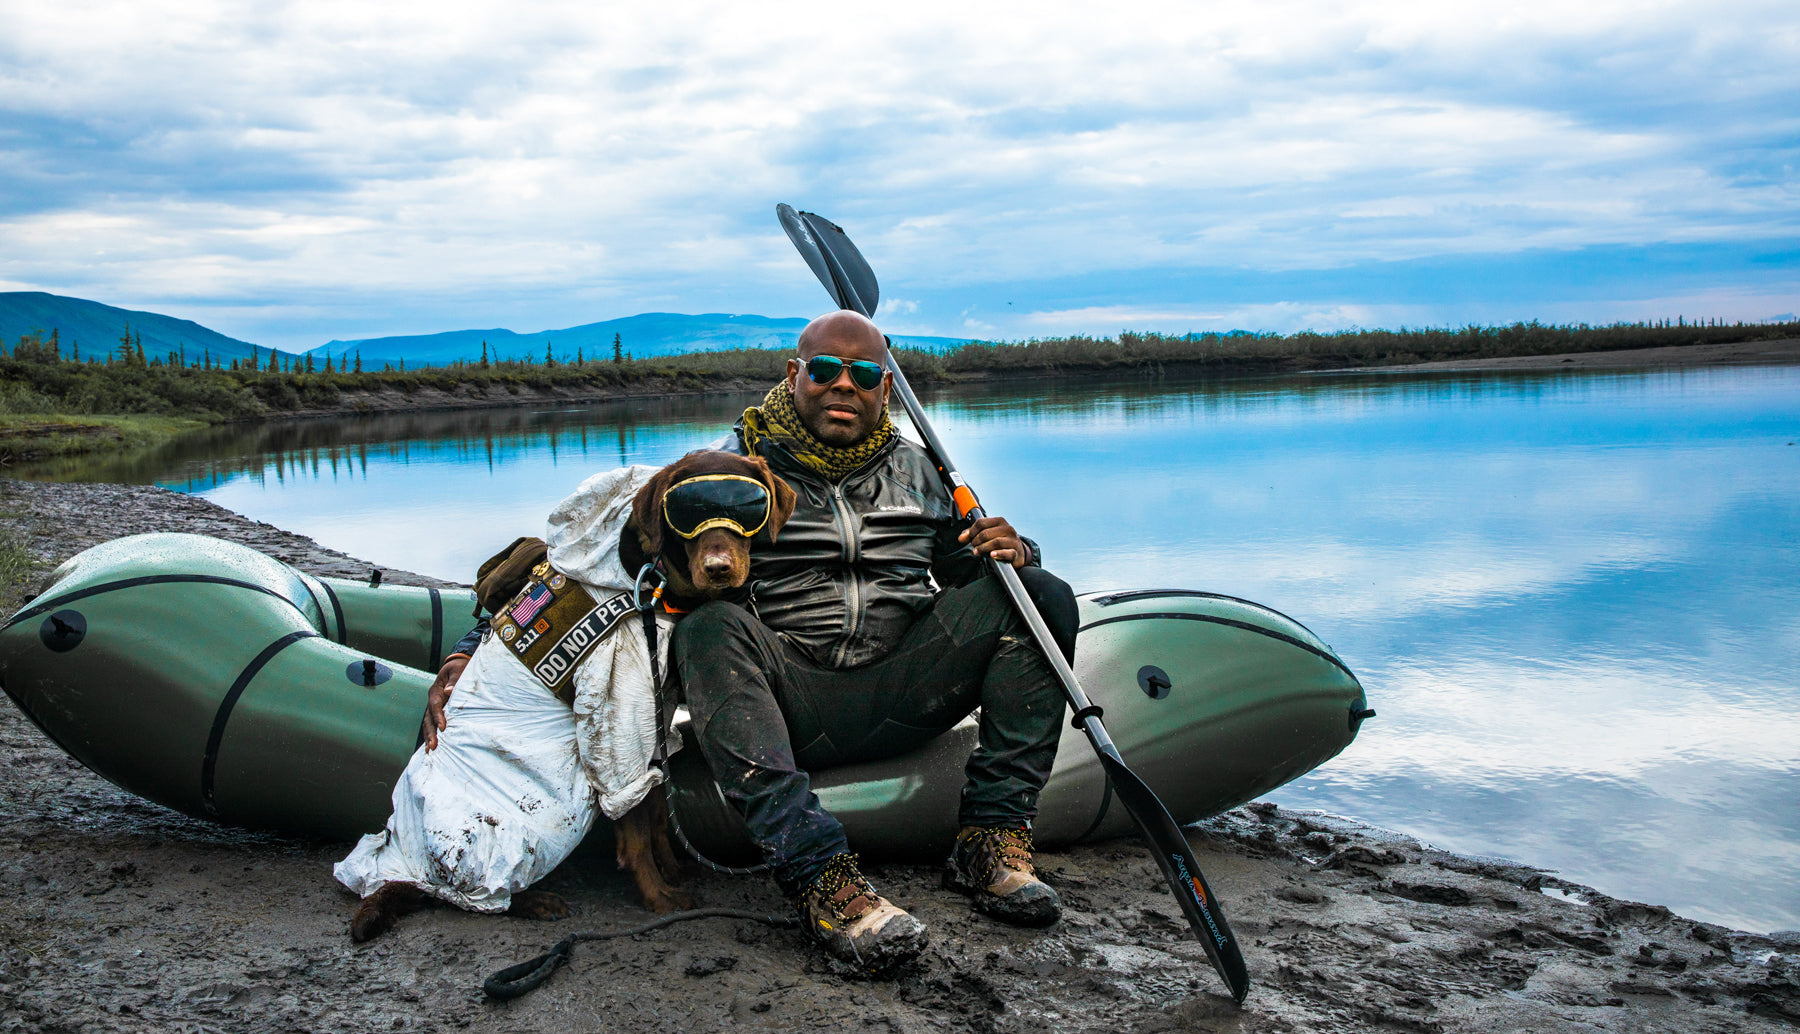 Chad and Axe sit by a packraft next to a lake with very blue skies in the background.